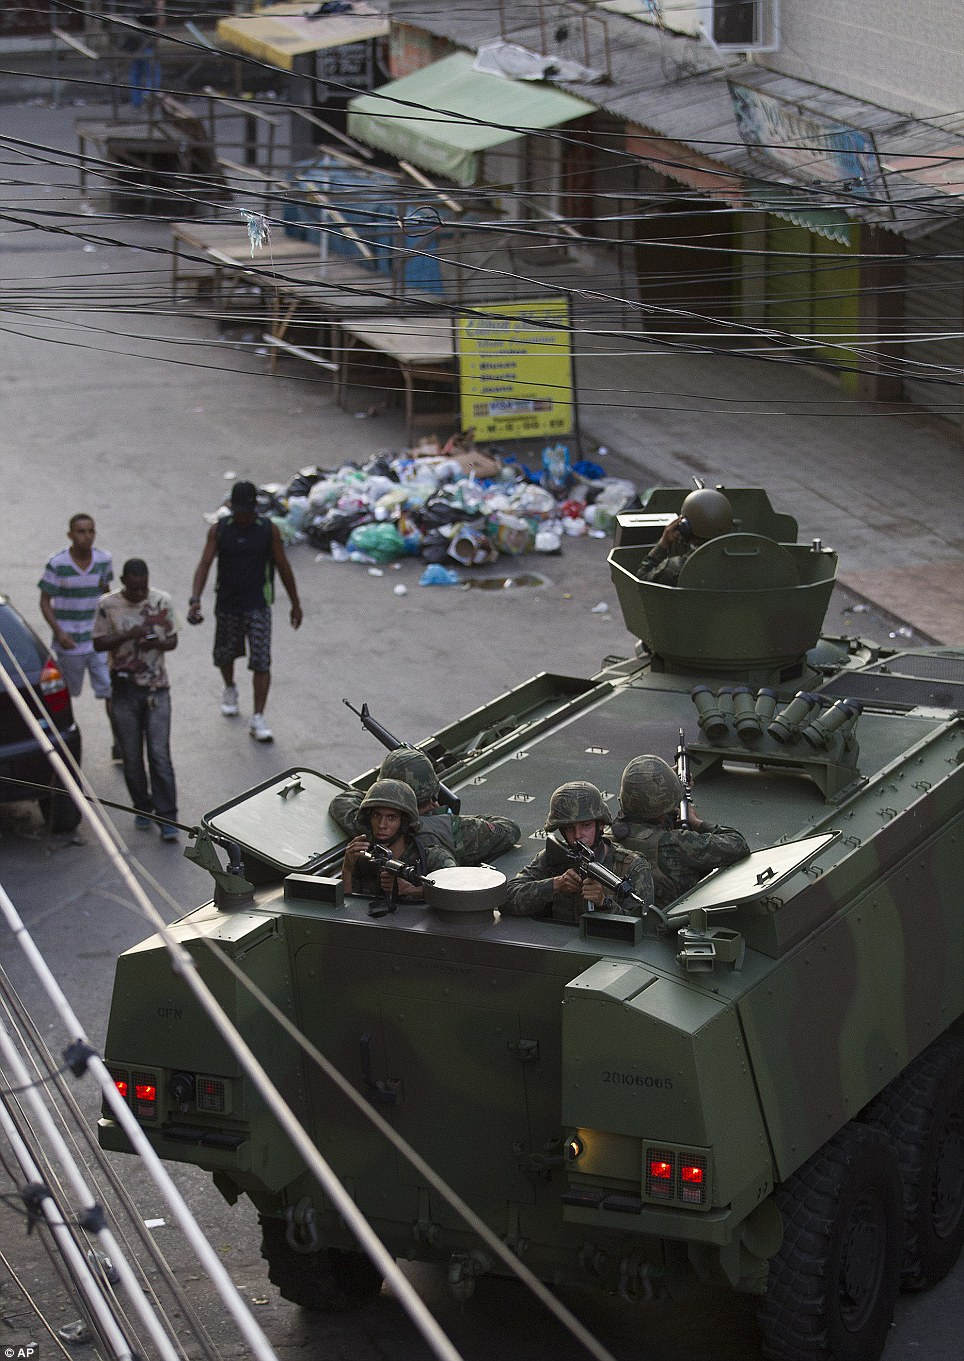 Residents walk through the slum as dozens of police officers, in camouflaged uniform hold machine guns from behind heavy-duty navy trucks